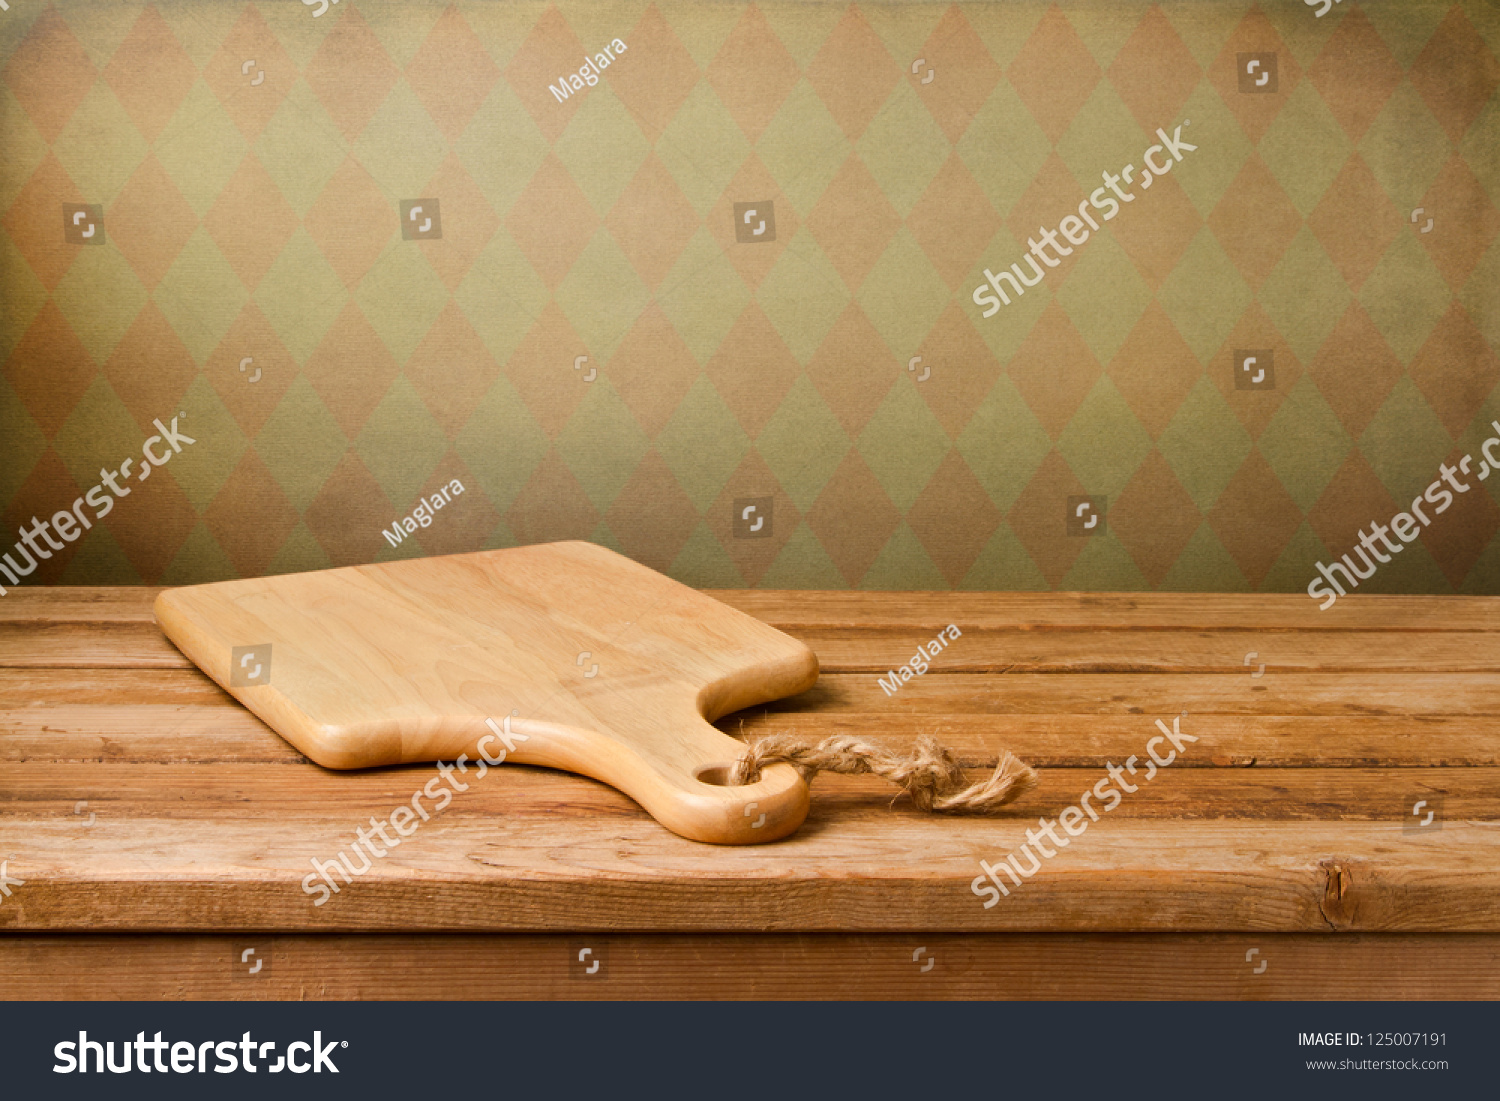 Wood table background hd - Background With Cutting Board On Wooden Table Over Vintage Wallpaper